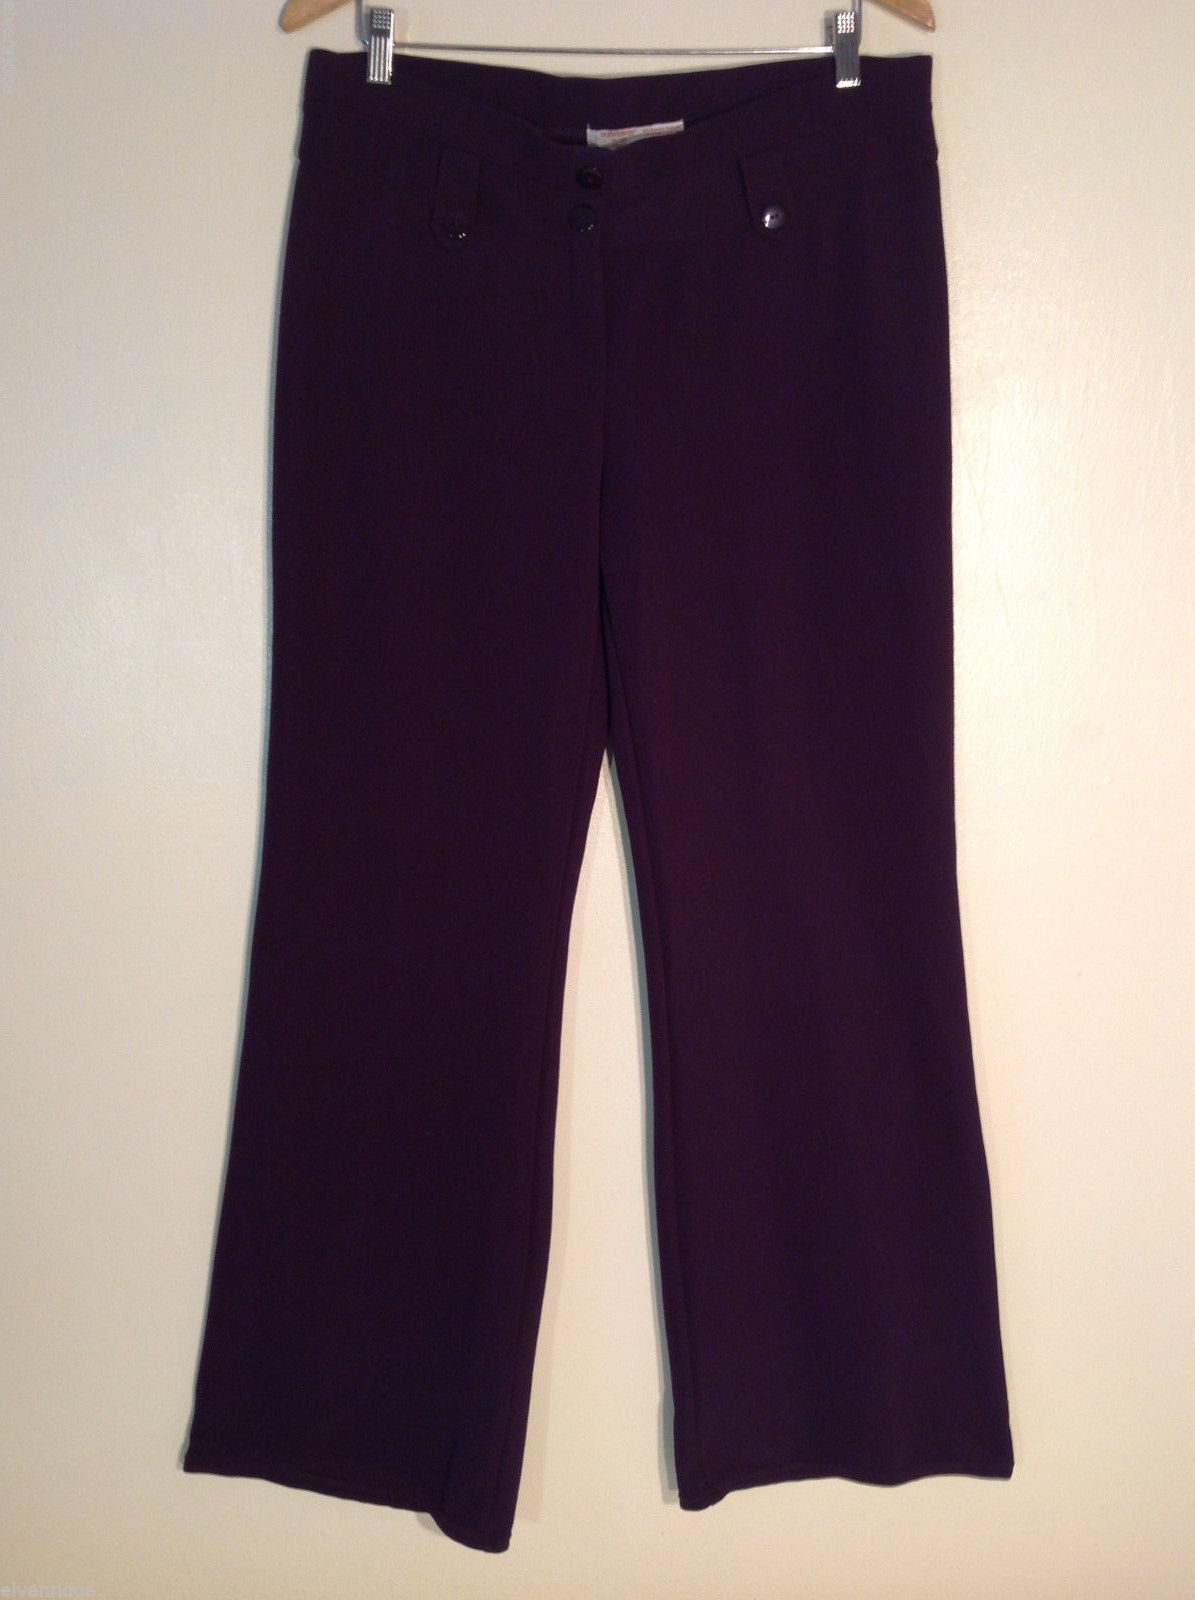 No Boundaries Women's Tall Size XL Pants Dark Purple Plum Eggplant Aubergine